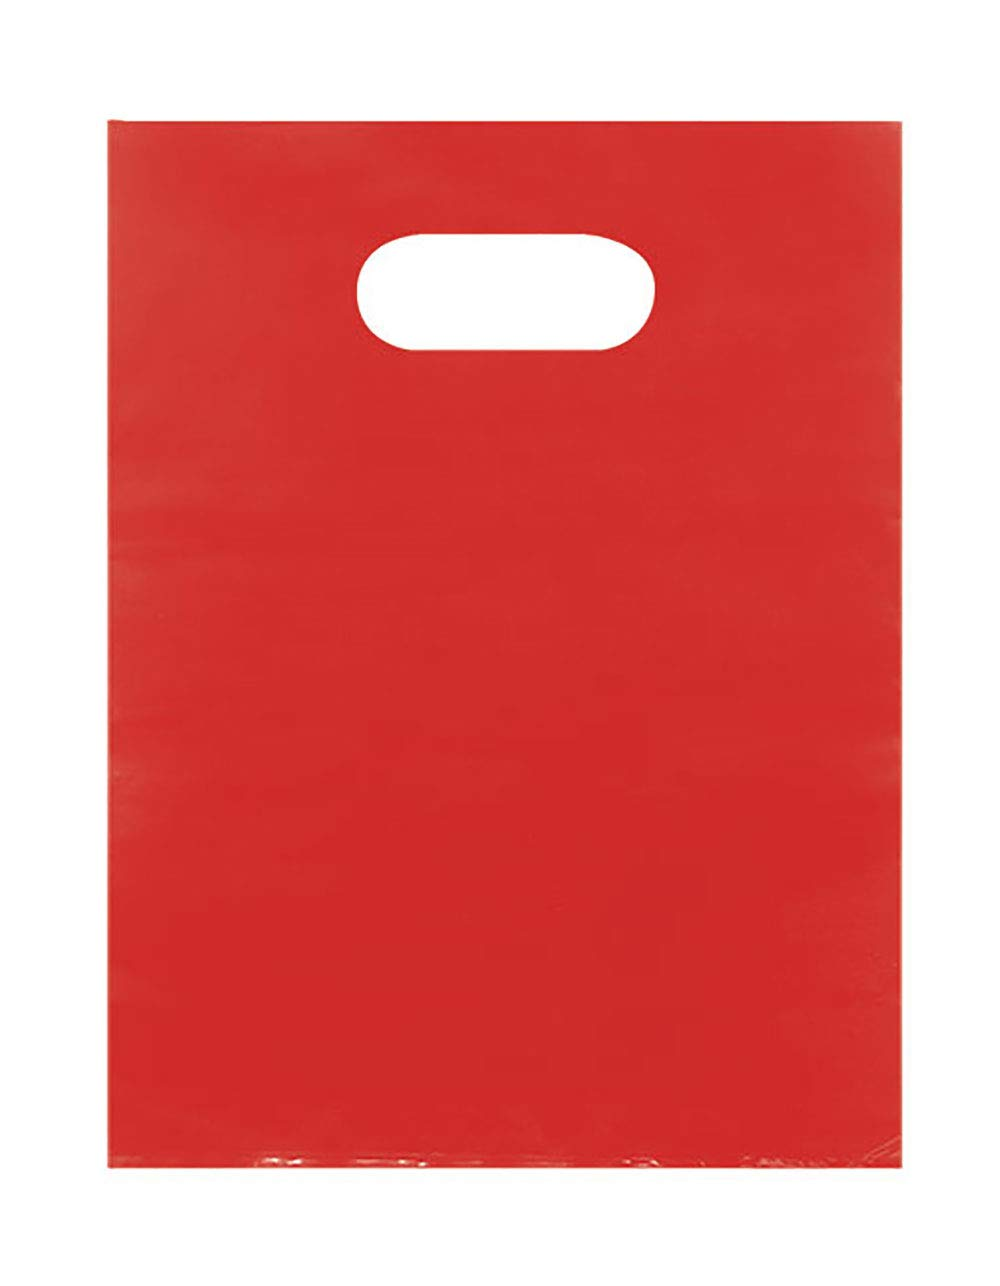 Red Merchandise Bags - Lightweight (9x12) - Pack of 1,000